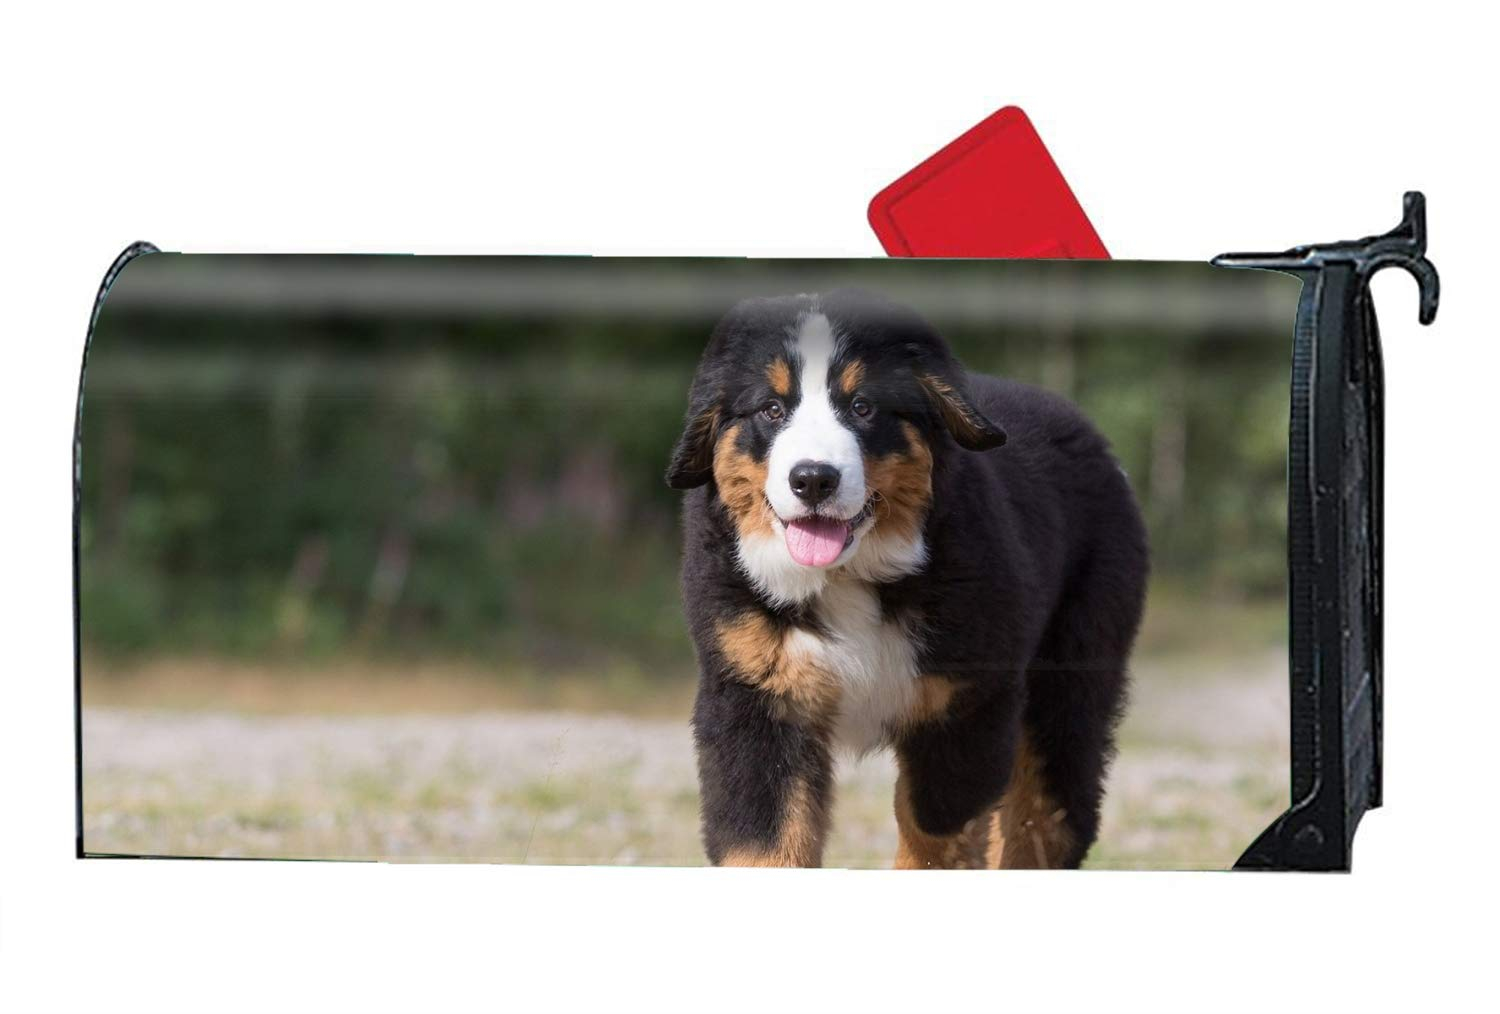 FANMIL 9X21 Inches Animal Sennenhund Dogs Bernese Mountain Dog Puppy Mailbox Cover- Magnetic Strips for Steel Standard Rural Mailbox